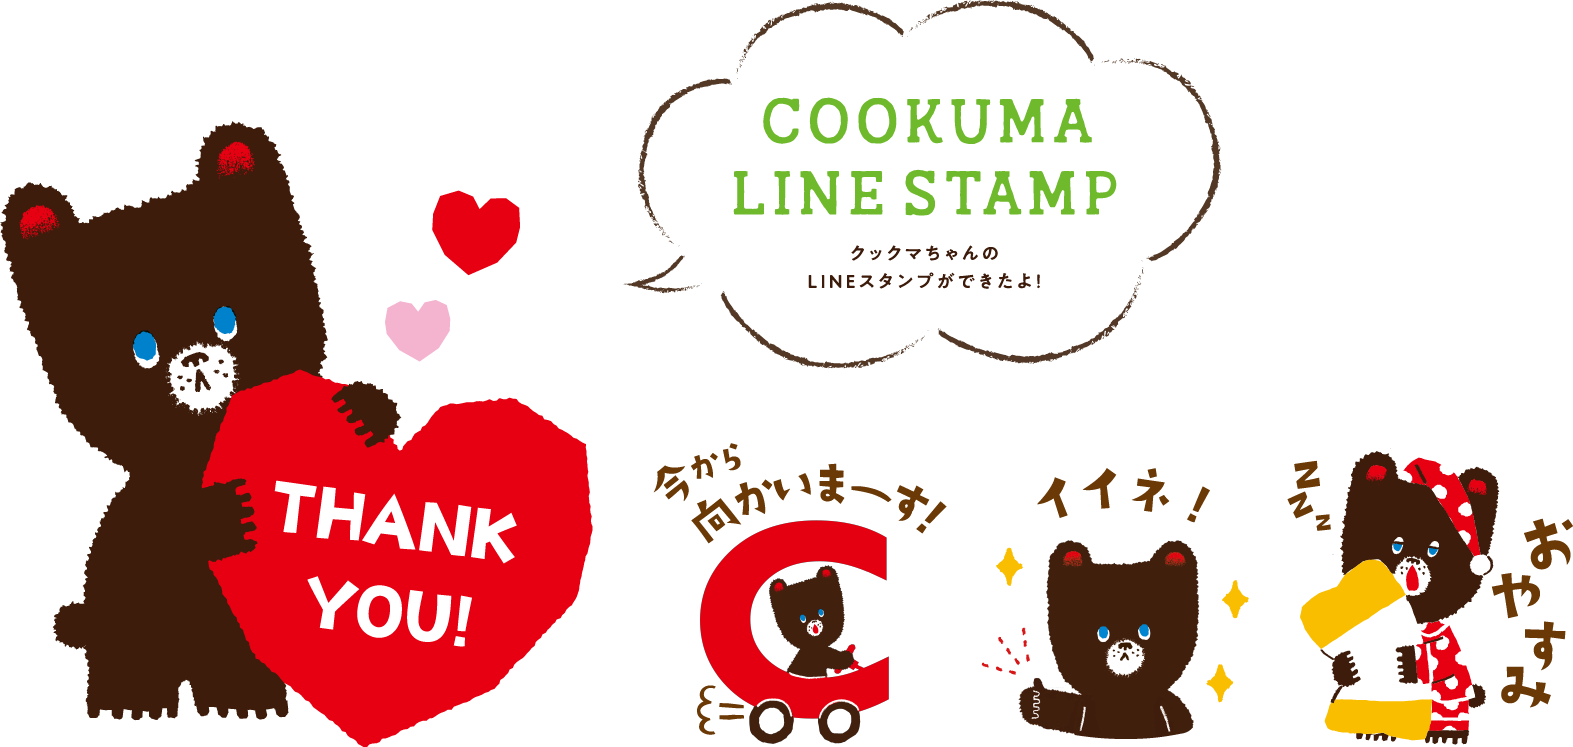 COOKUMA LINE STAMP